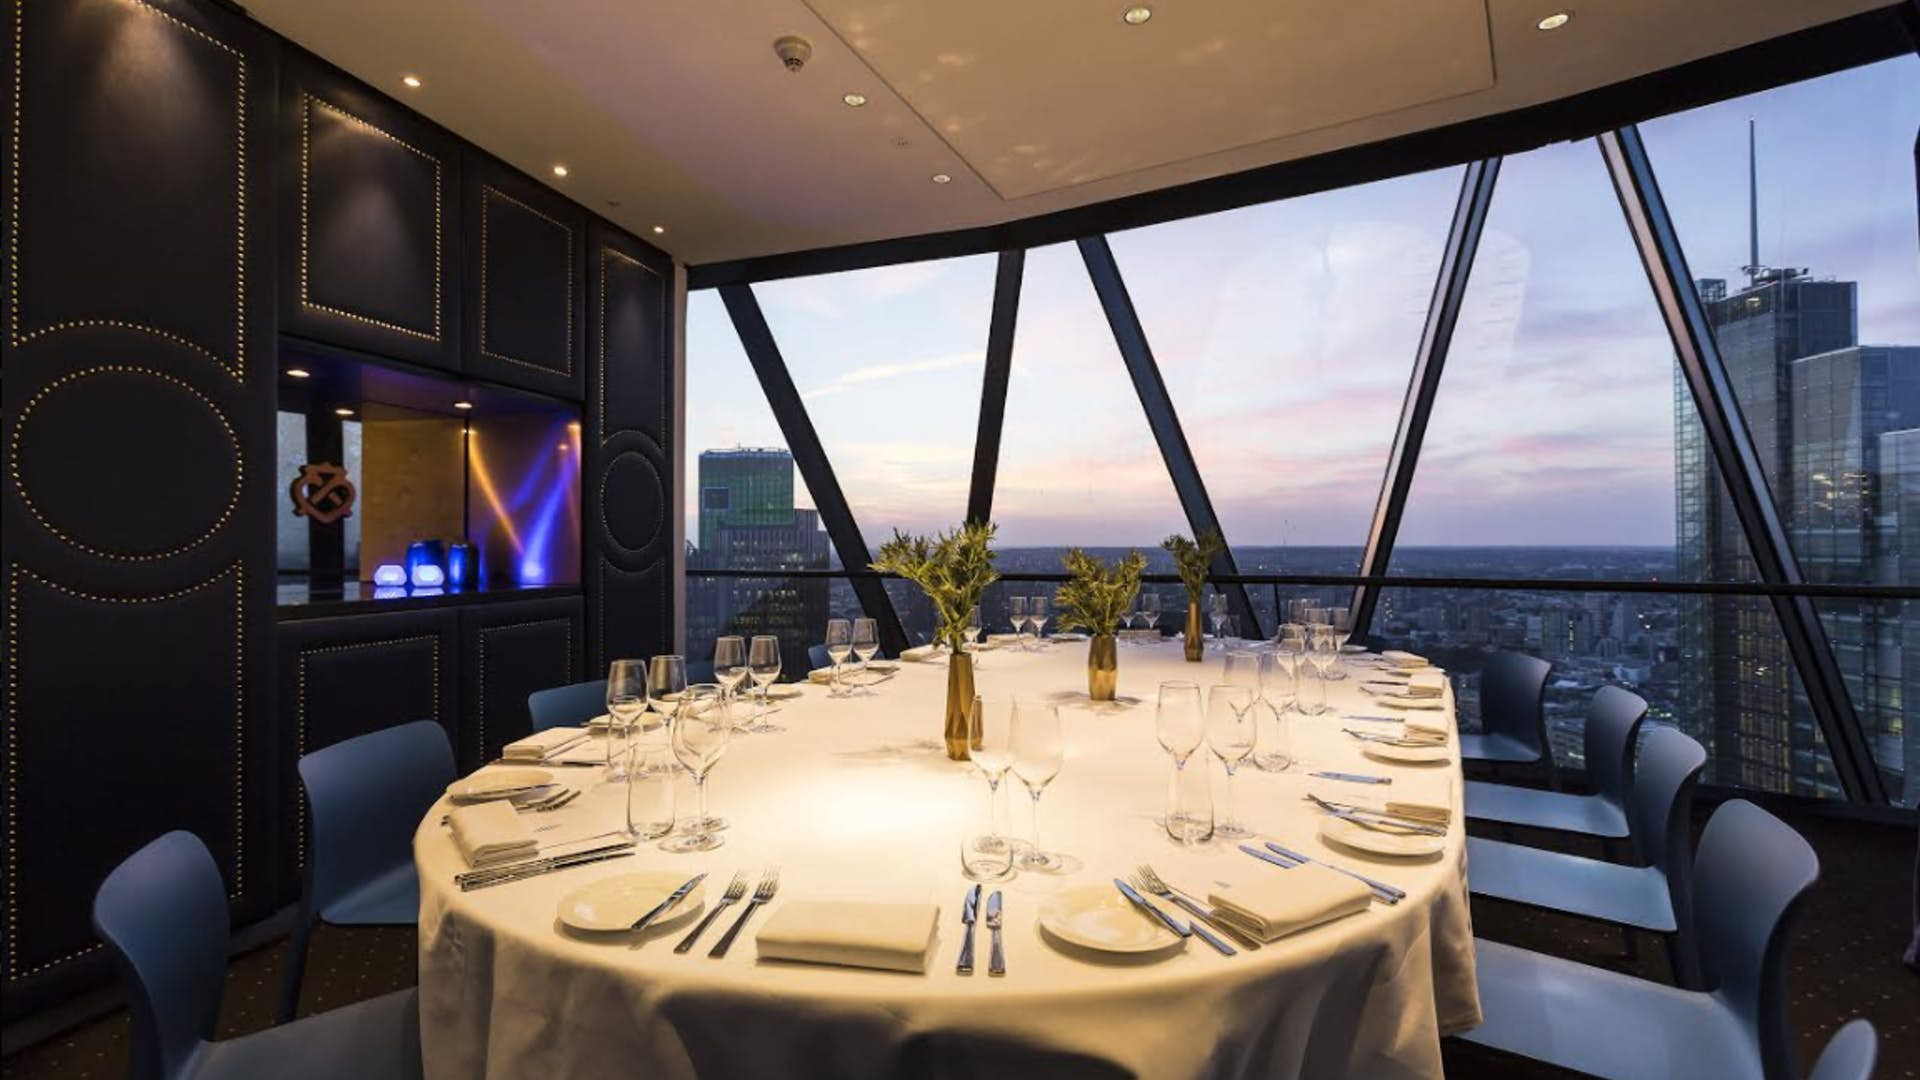 Chivas dining room dining searcys the gherkin for Q dining room london